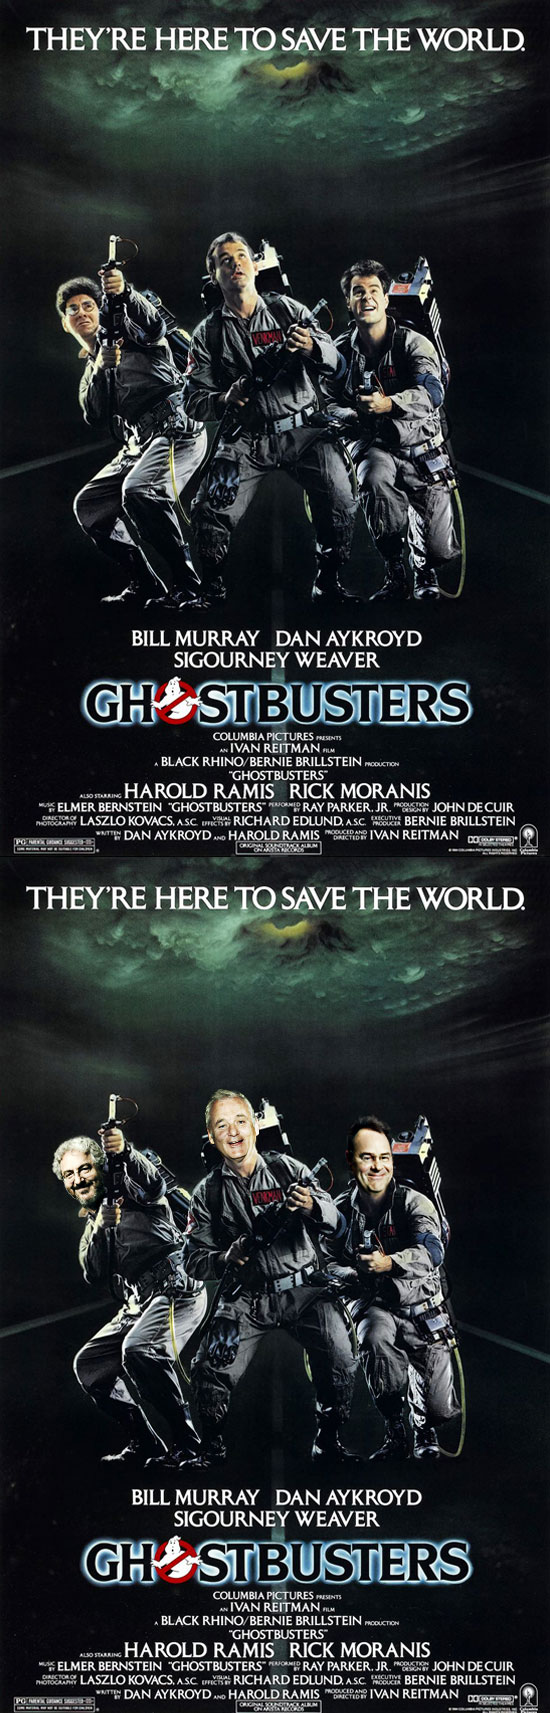 Funny photos, ghostbusters, before and after